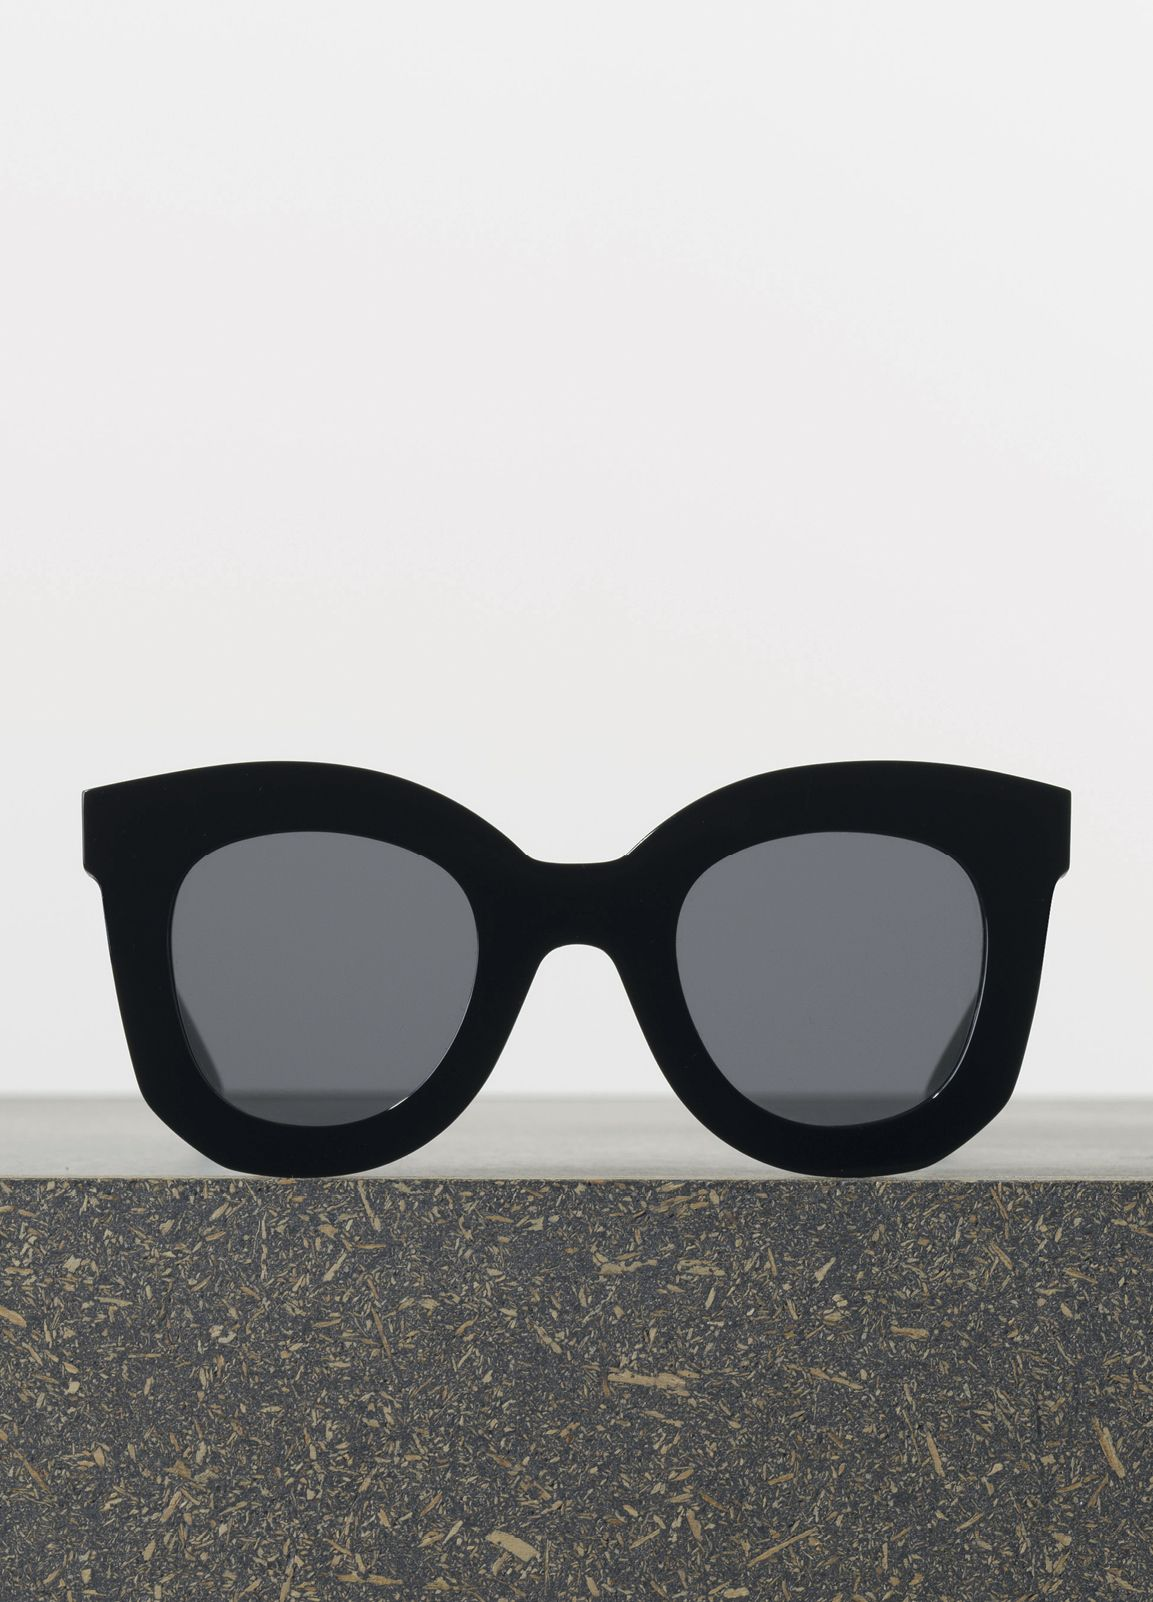 ce44ab511d Marta Sunglasses in Black Acetate with Grey Lenses I want these so bad. Wish  the lenses were darker though